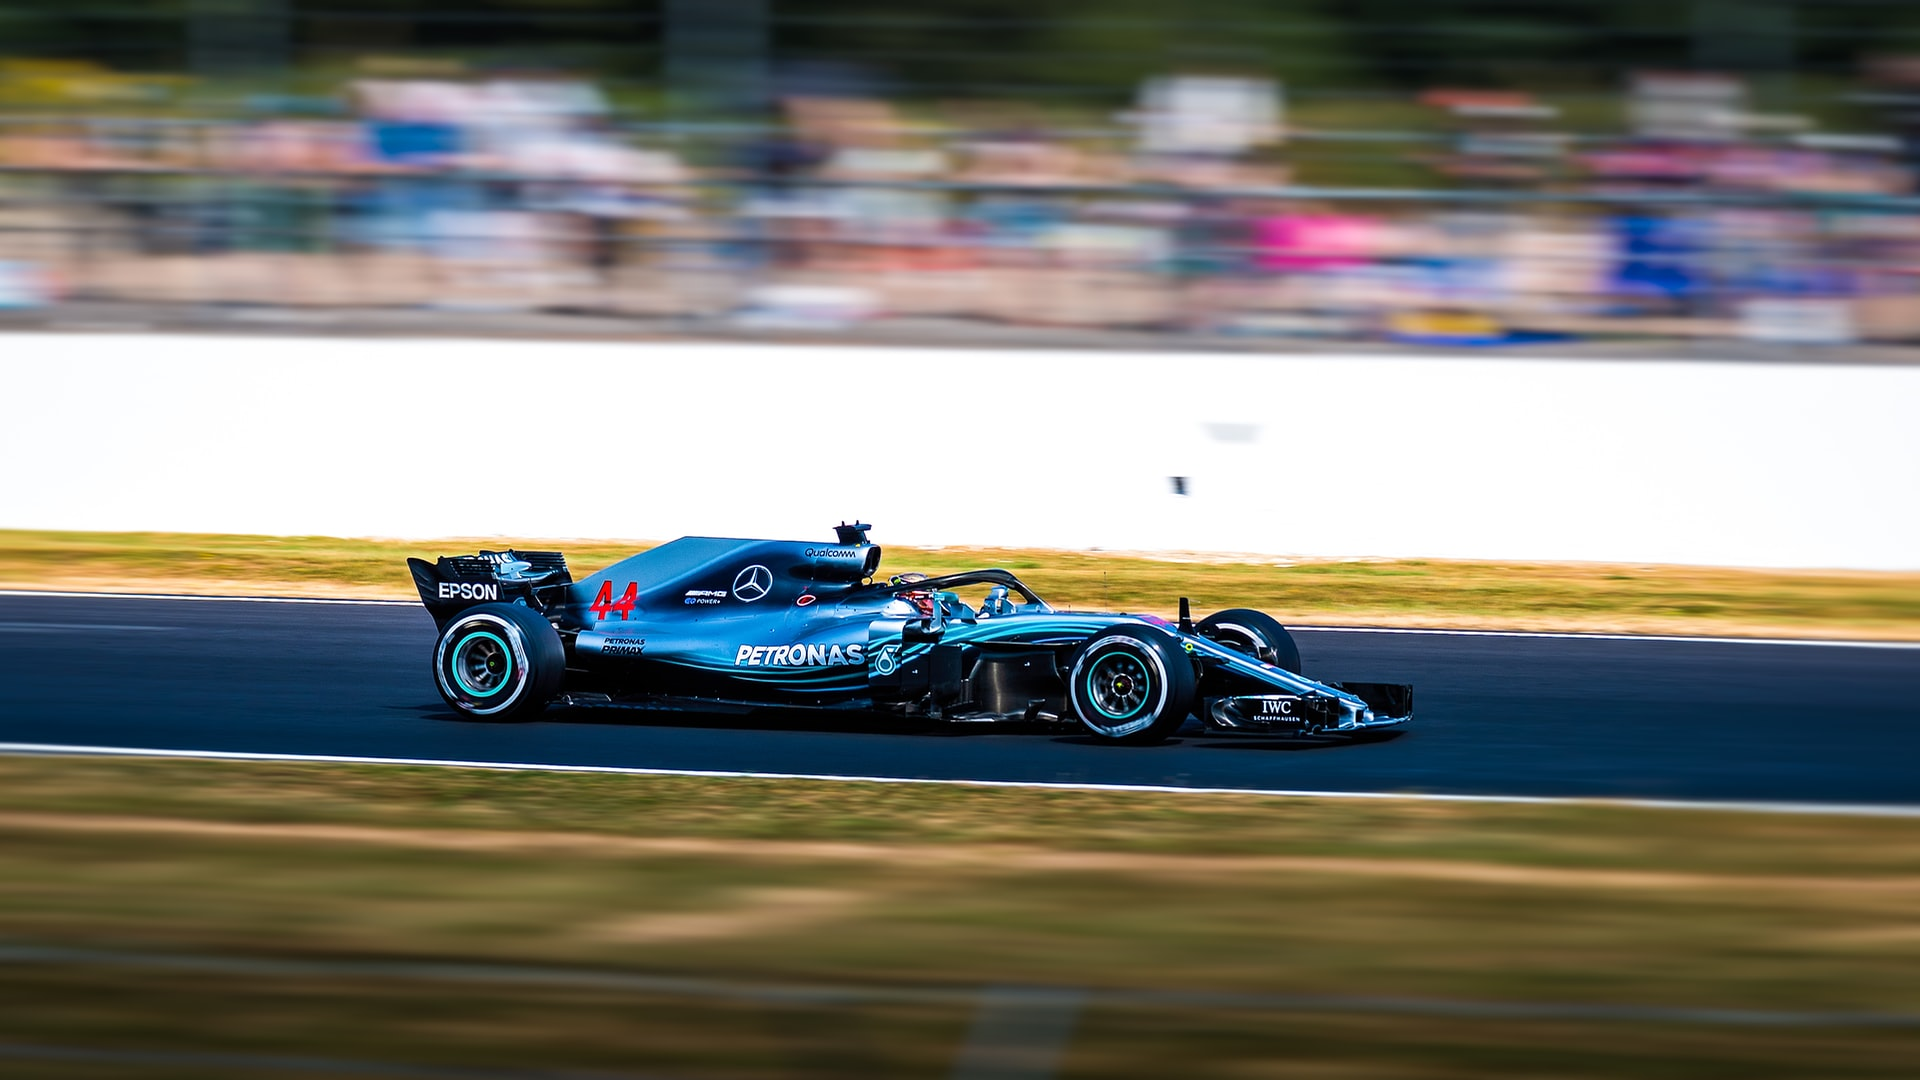 Mercedes May Move Aside In Formula One Racing As Red Bull Dominates